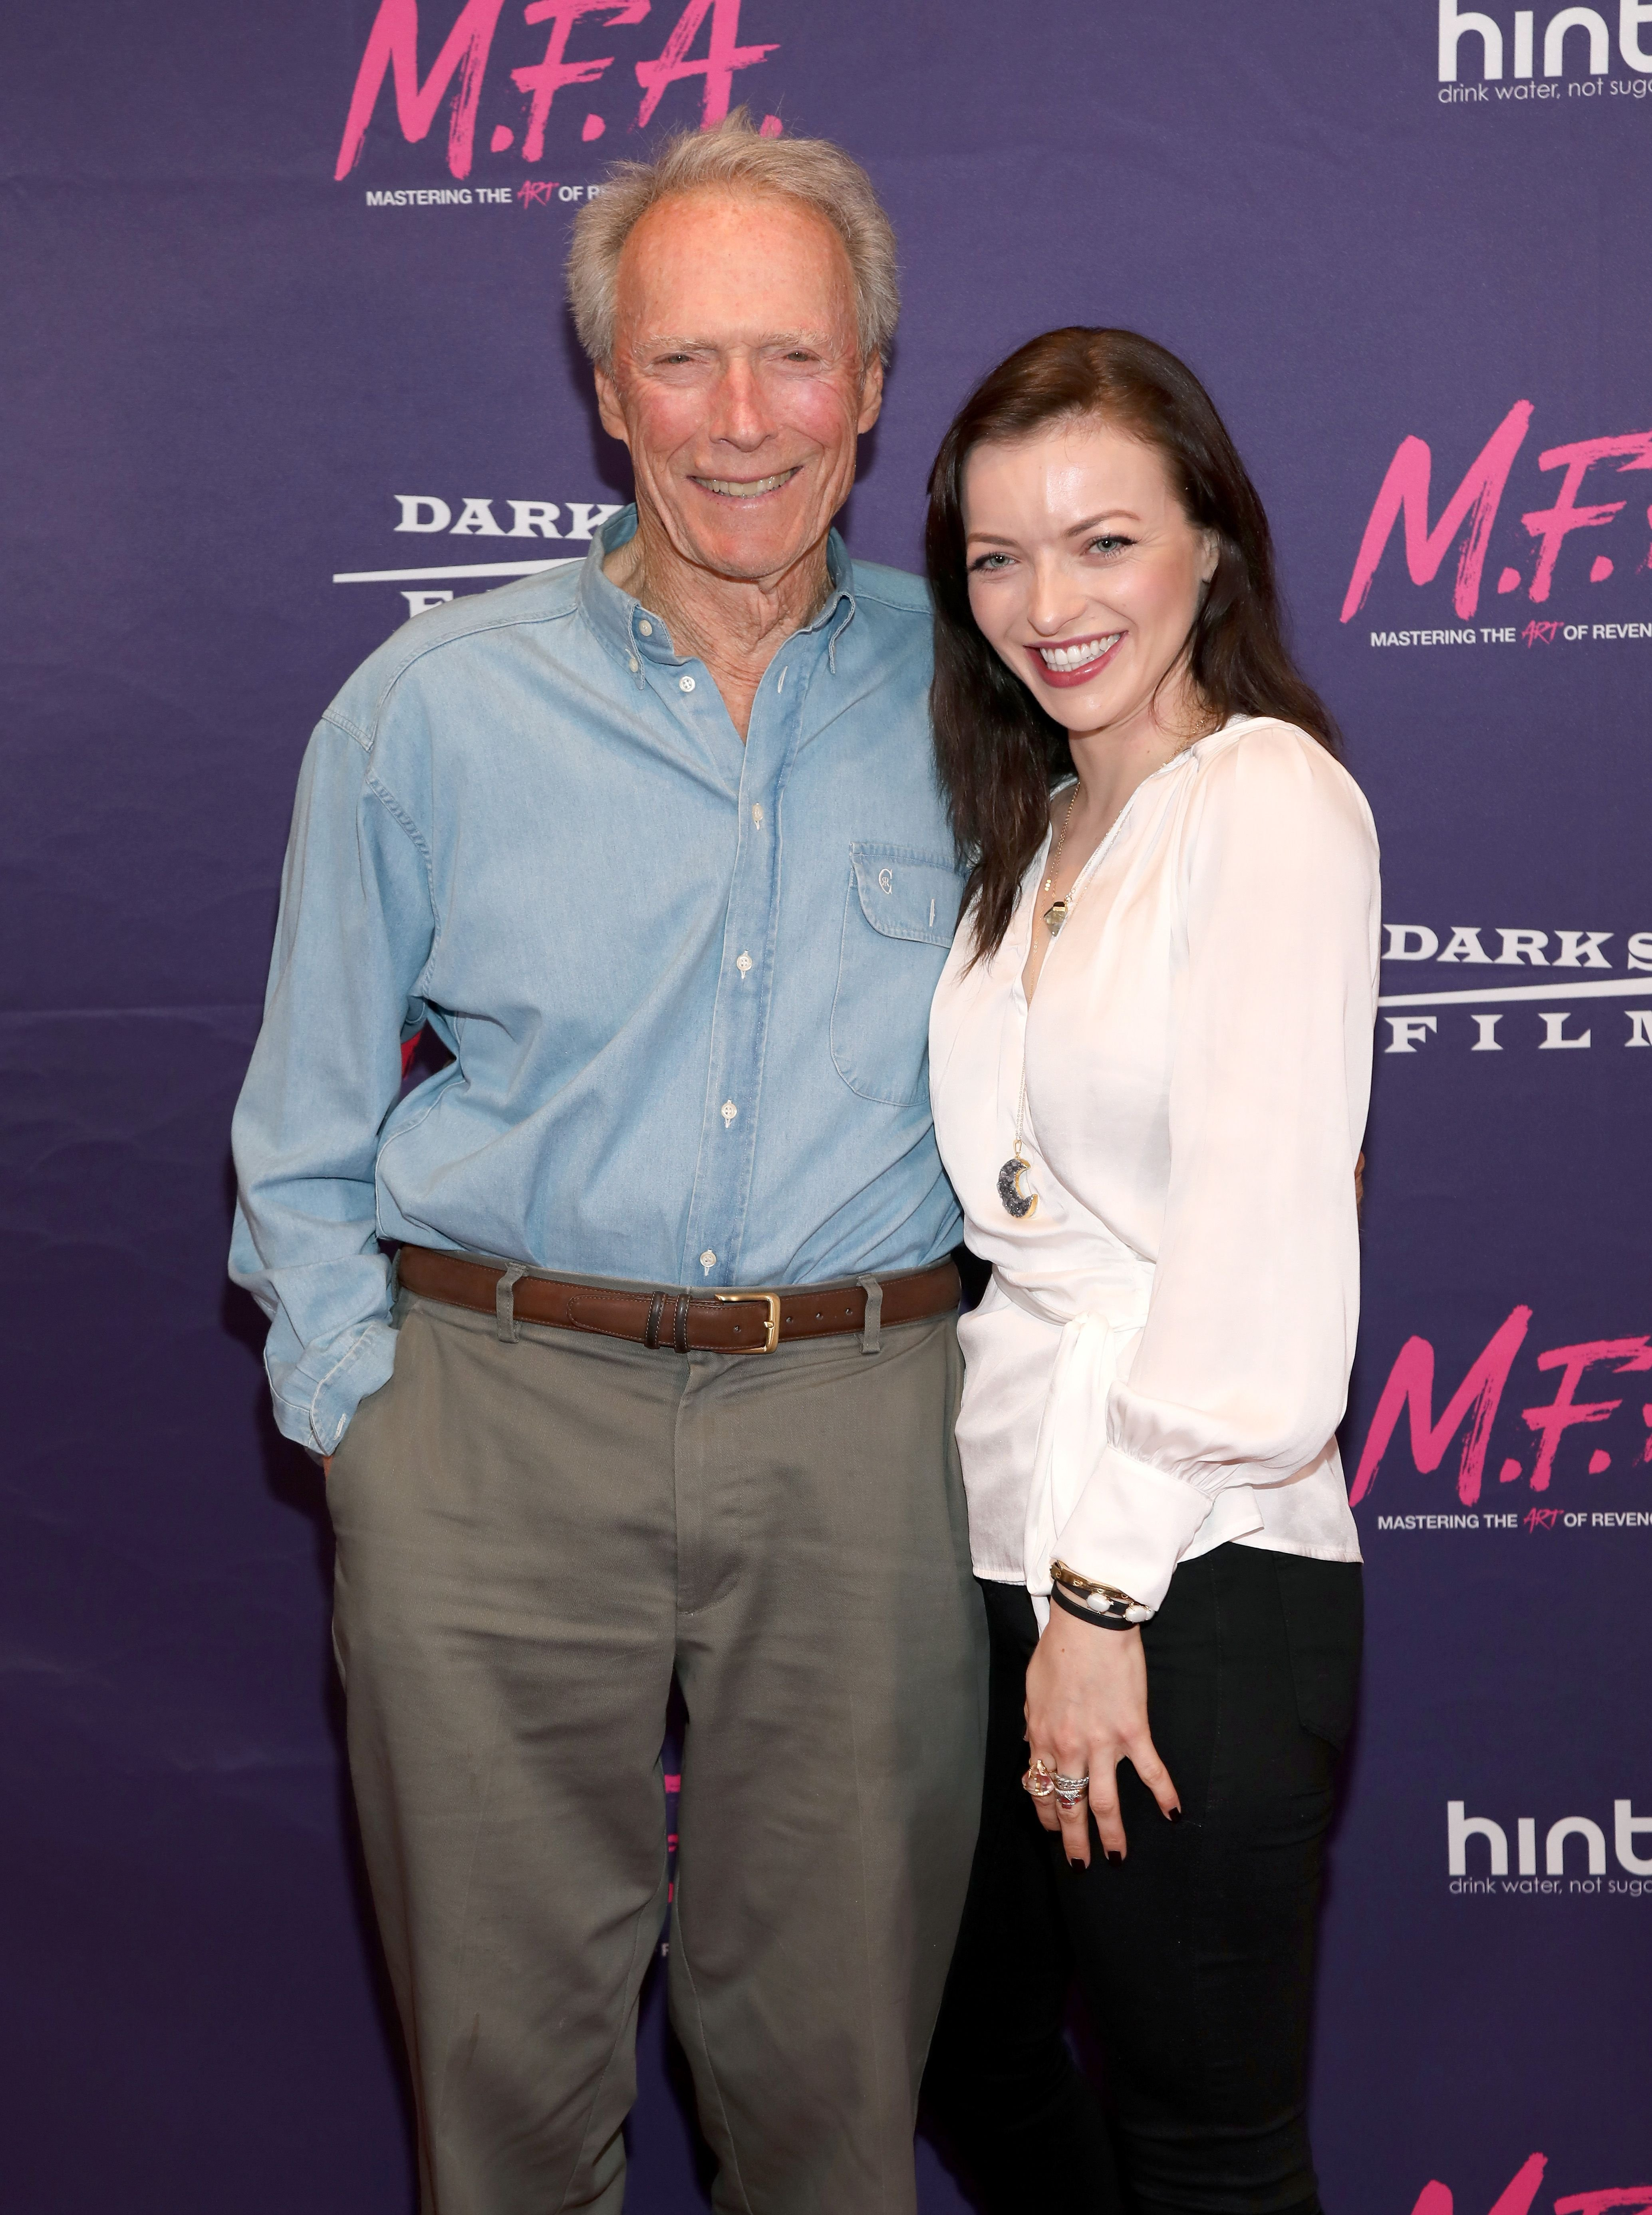 """Actor Clint Eastwood poses with his daughter Francesca Eastwood at the Premiere Of Dark Sky Films' """"M.F.A."""" at The London West Hollywood on October 2, 2017   Photo Getty Images"""